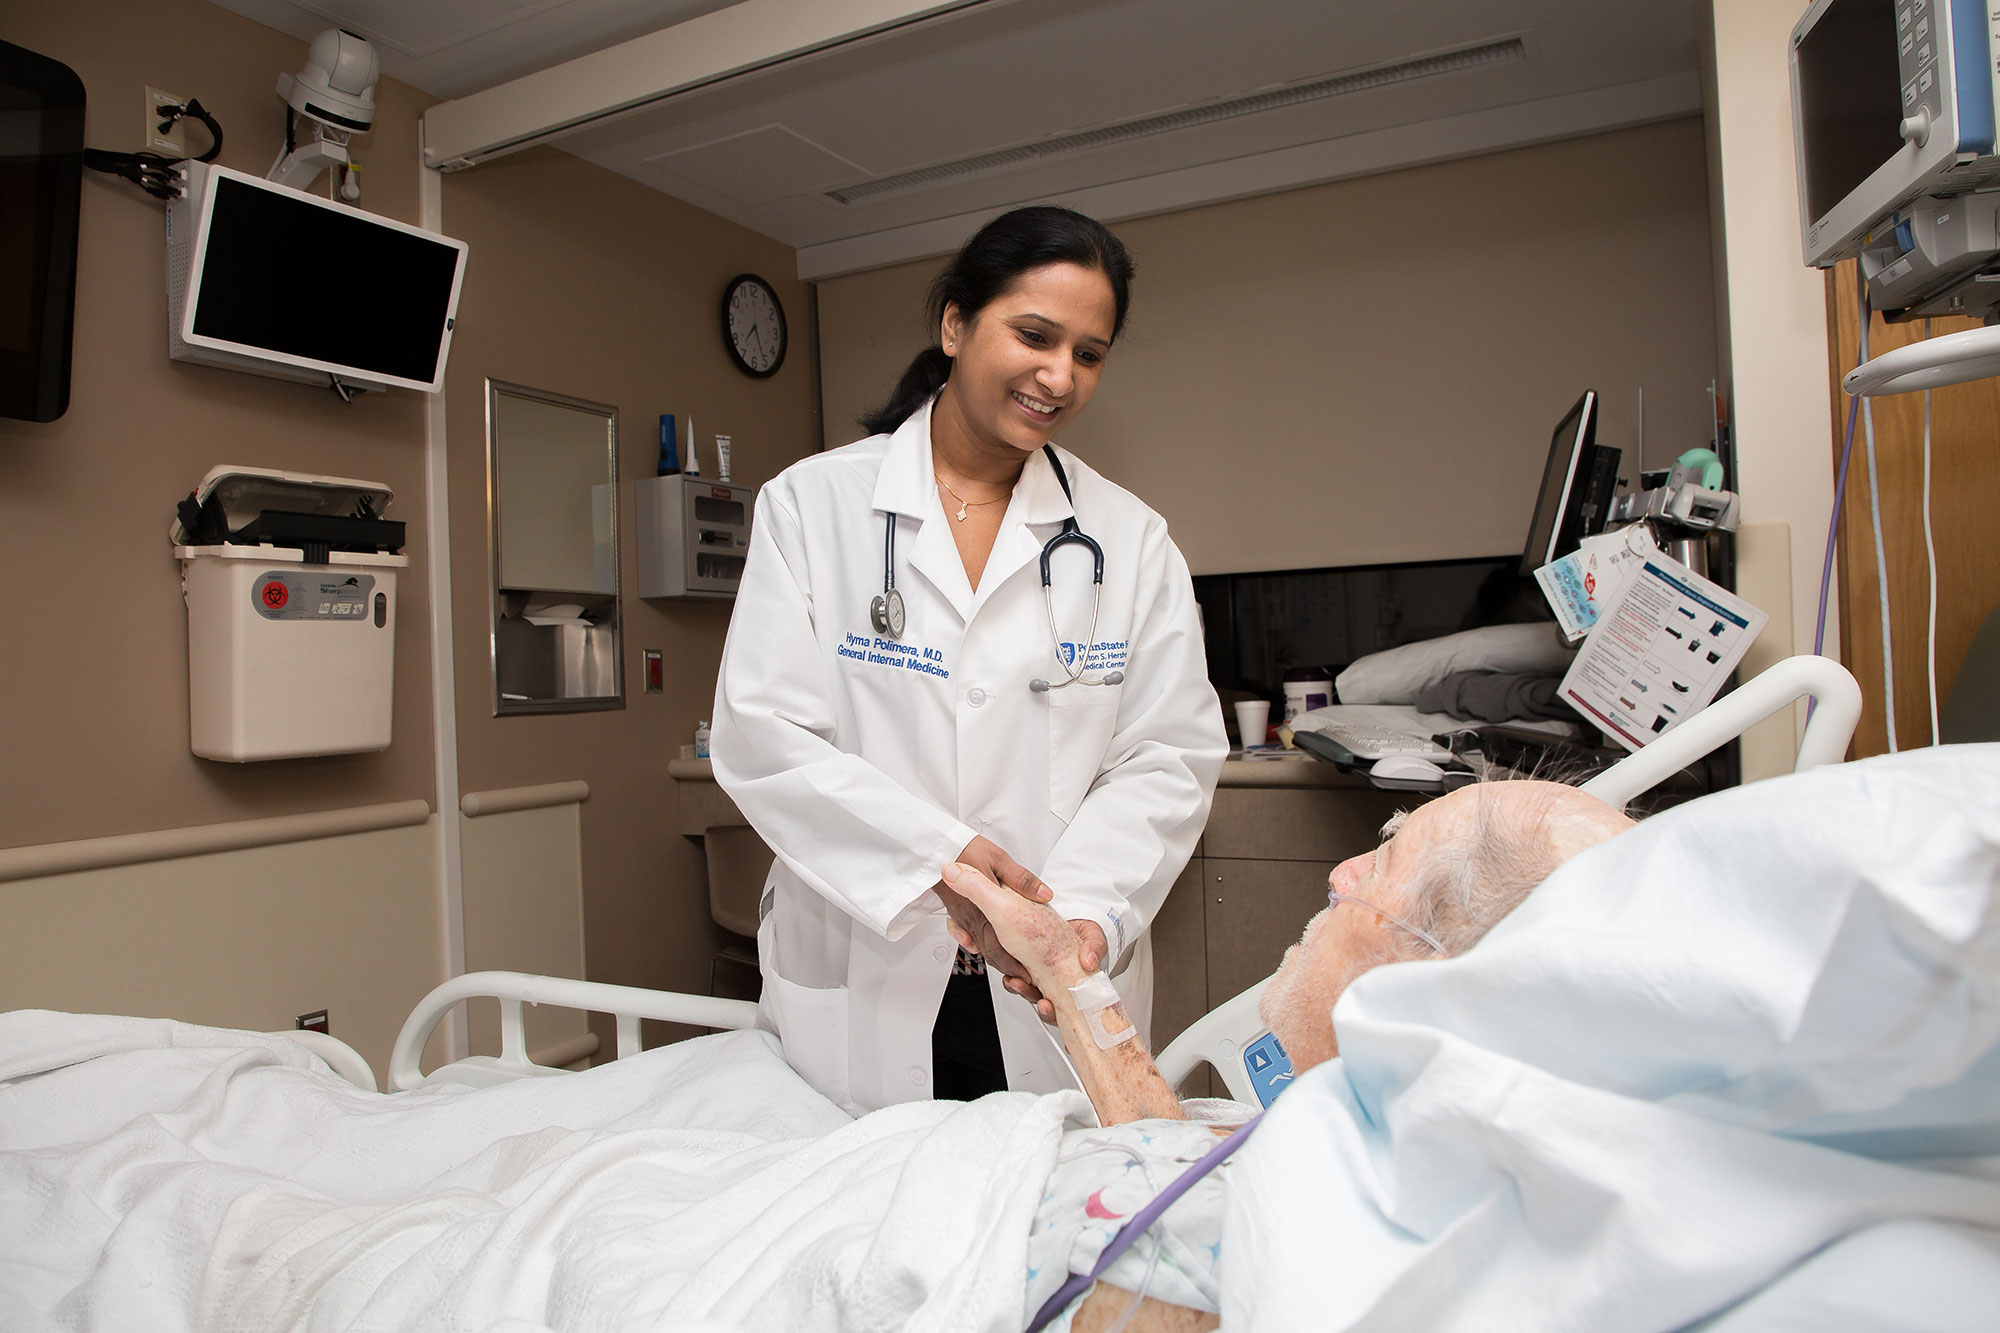 A photo shows Dr. Hyma Polimera at the bedside of a patient at Penn State Health Milton S. Hershey Medical Center.